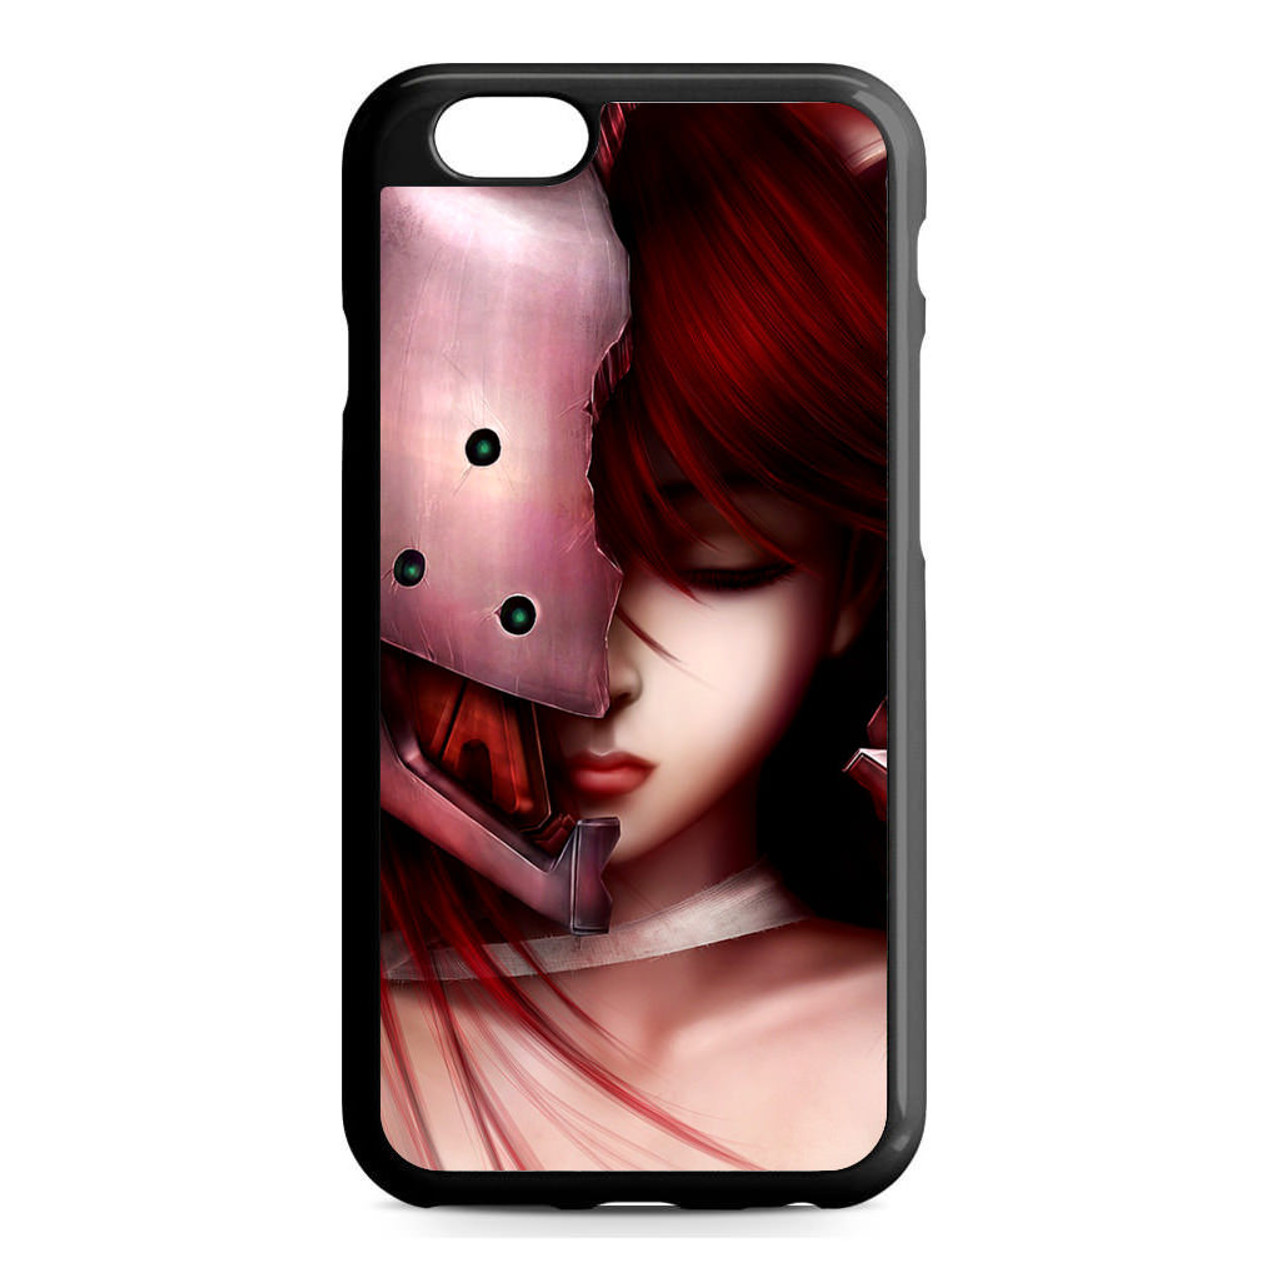 iphone 6 case lucy